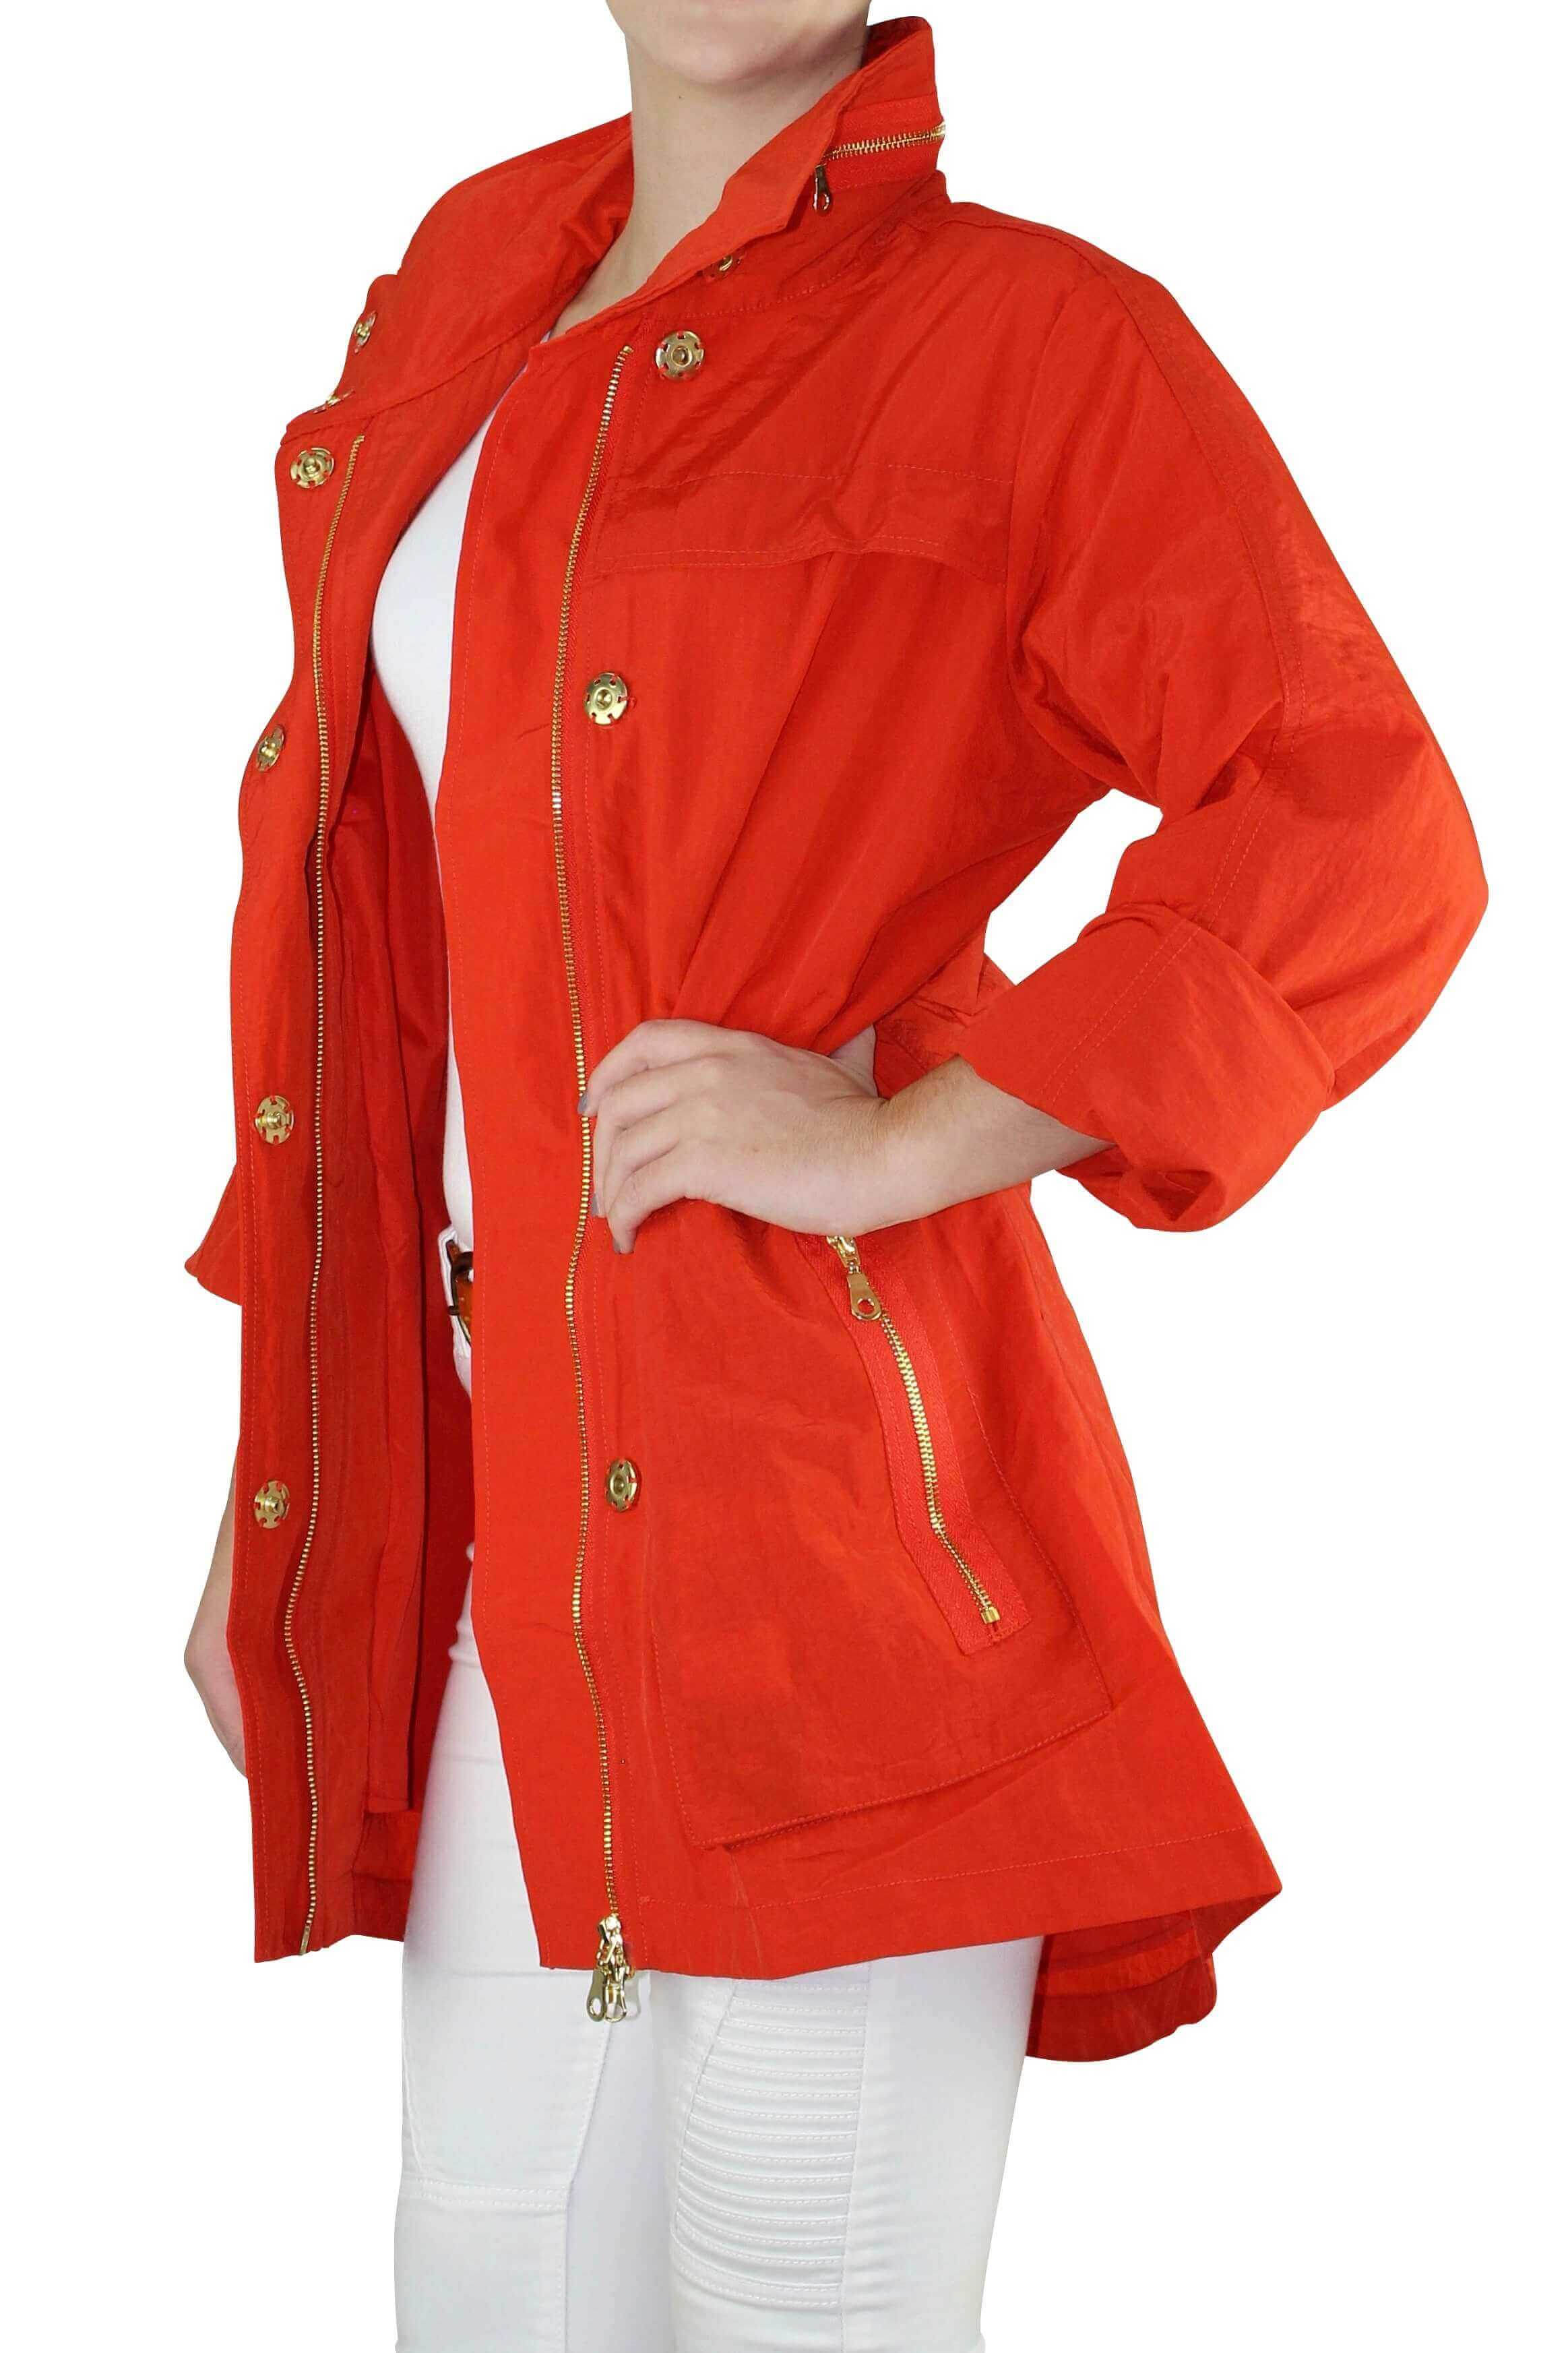 Poinciana Light Jacket